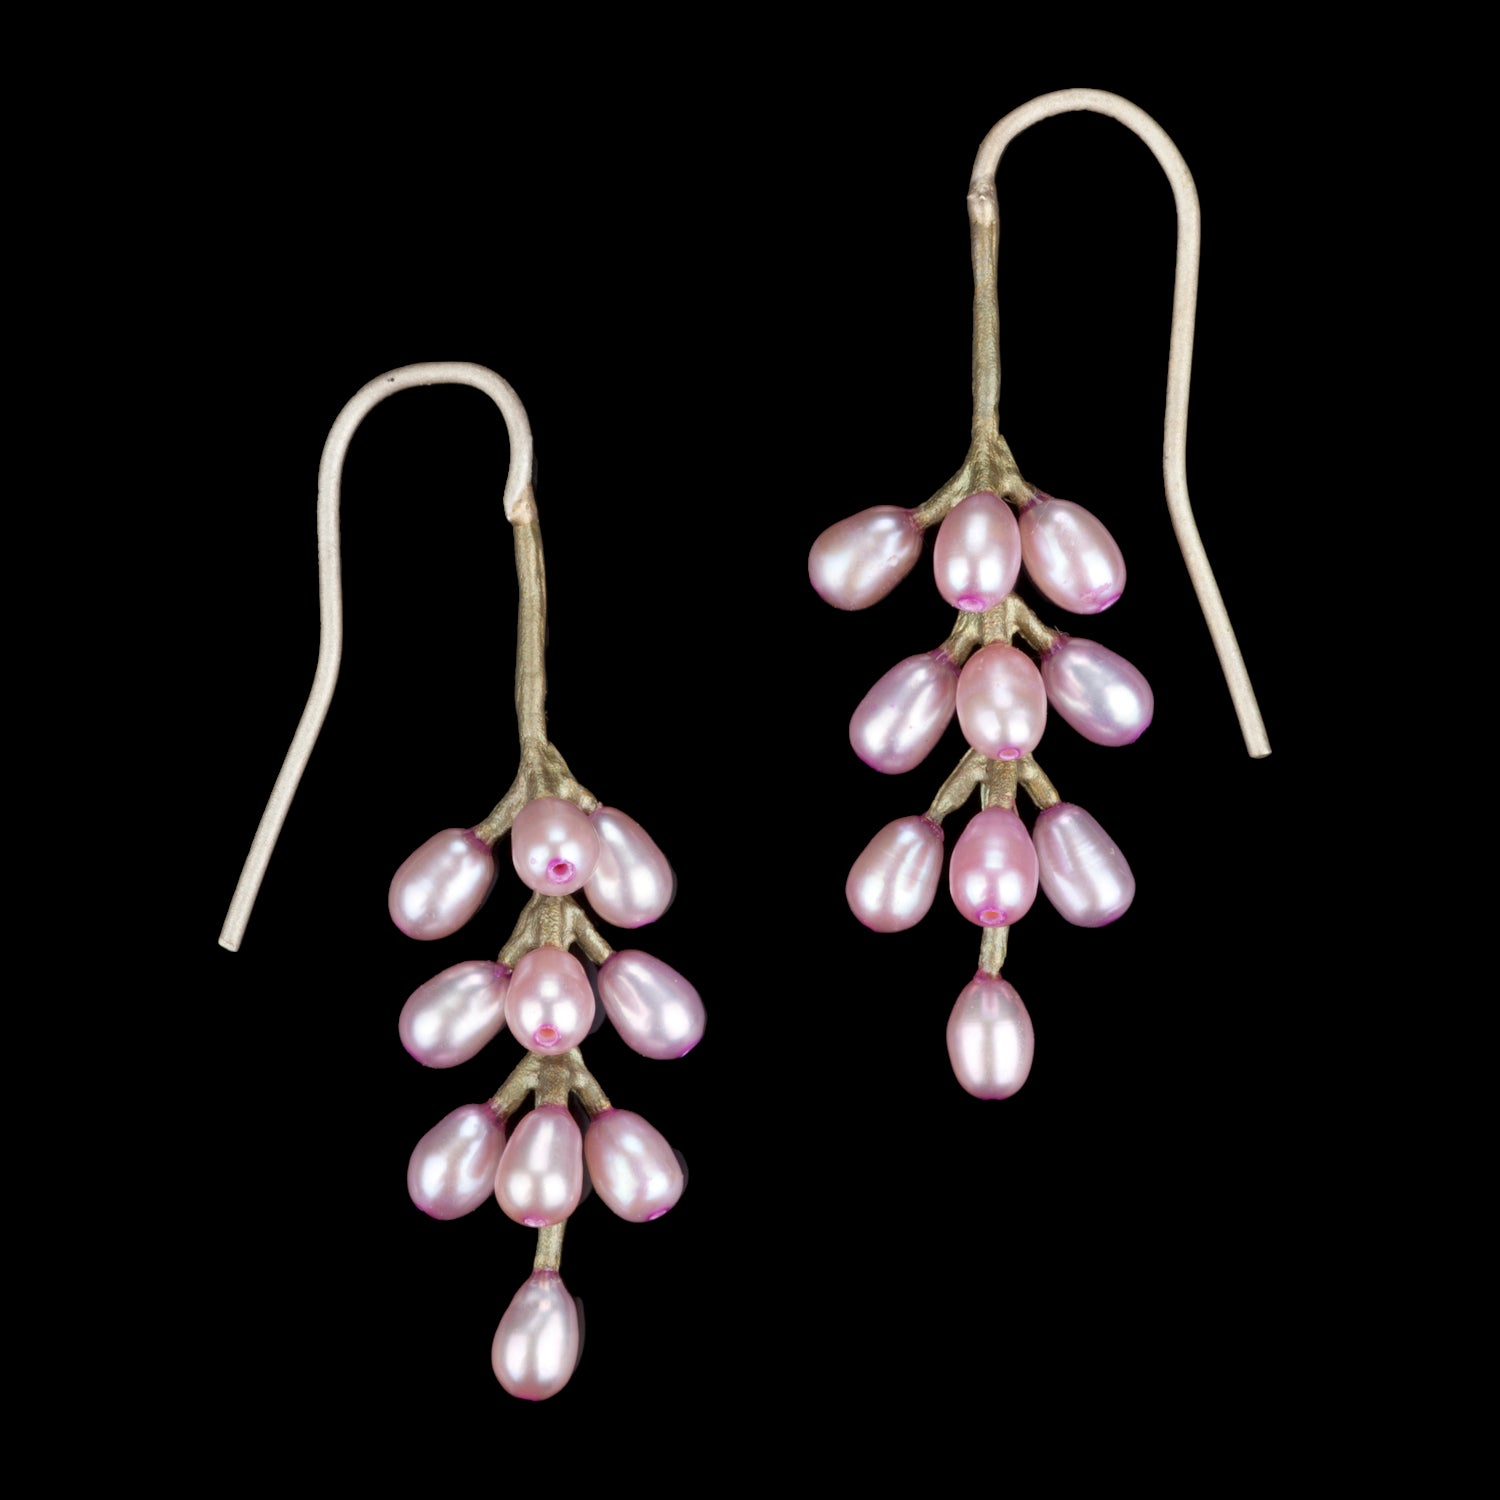 French Lavender Earrings - All Pearl Wire Drop